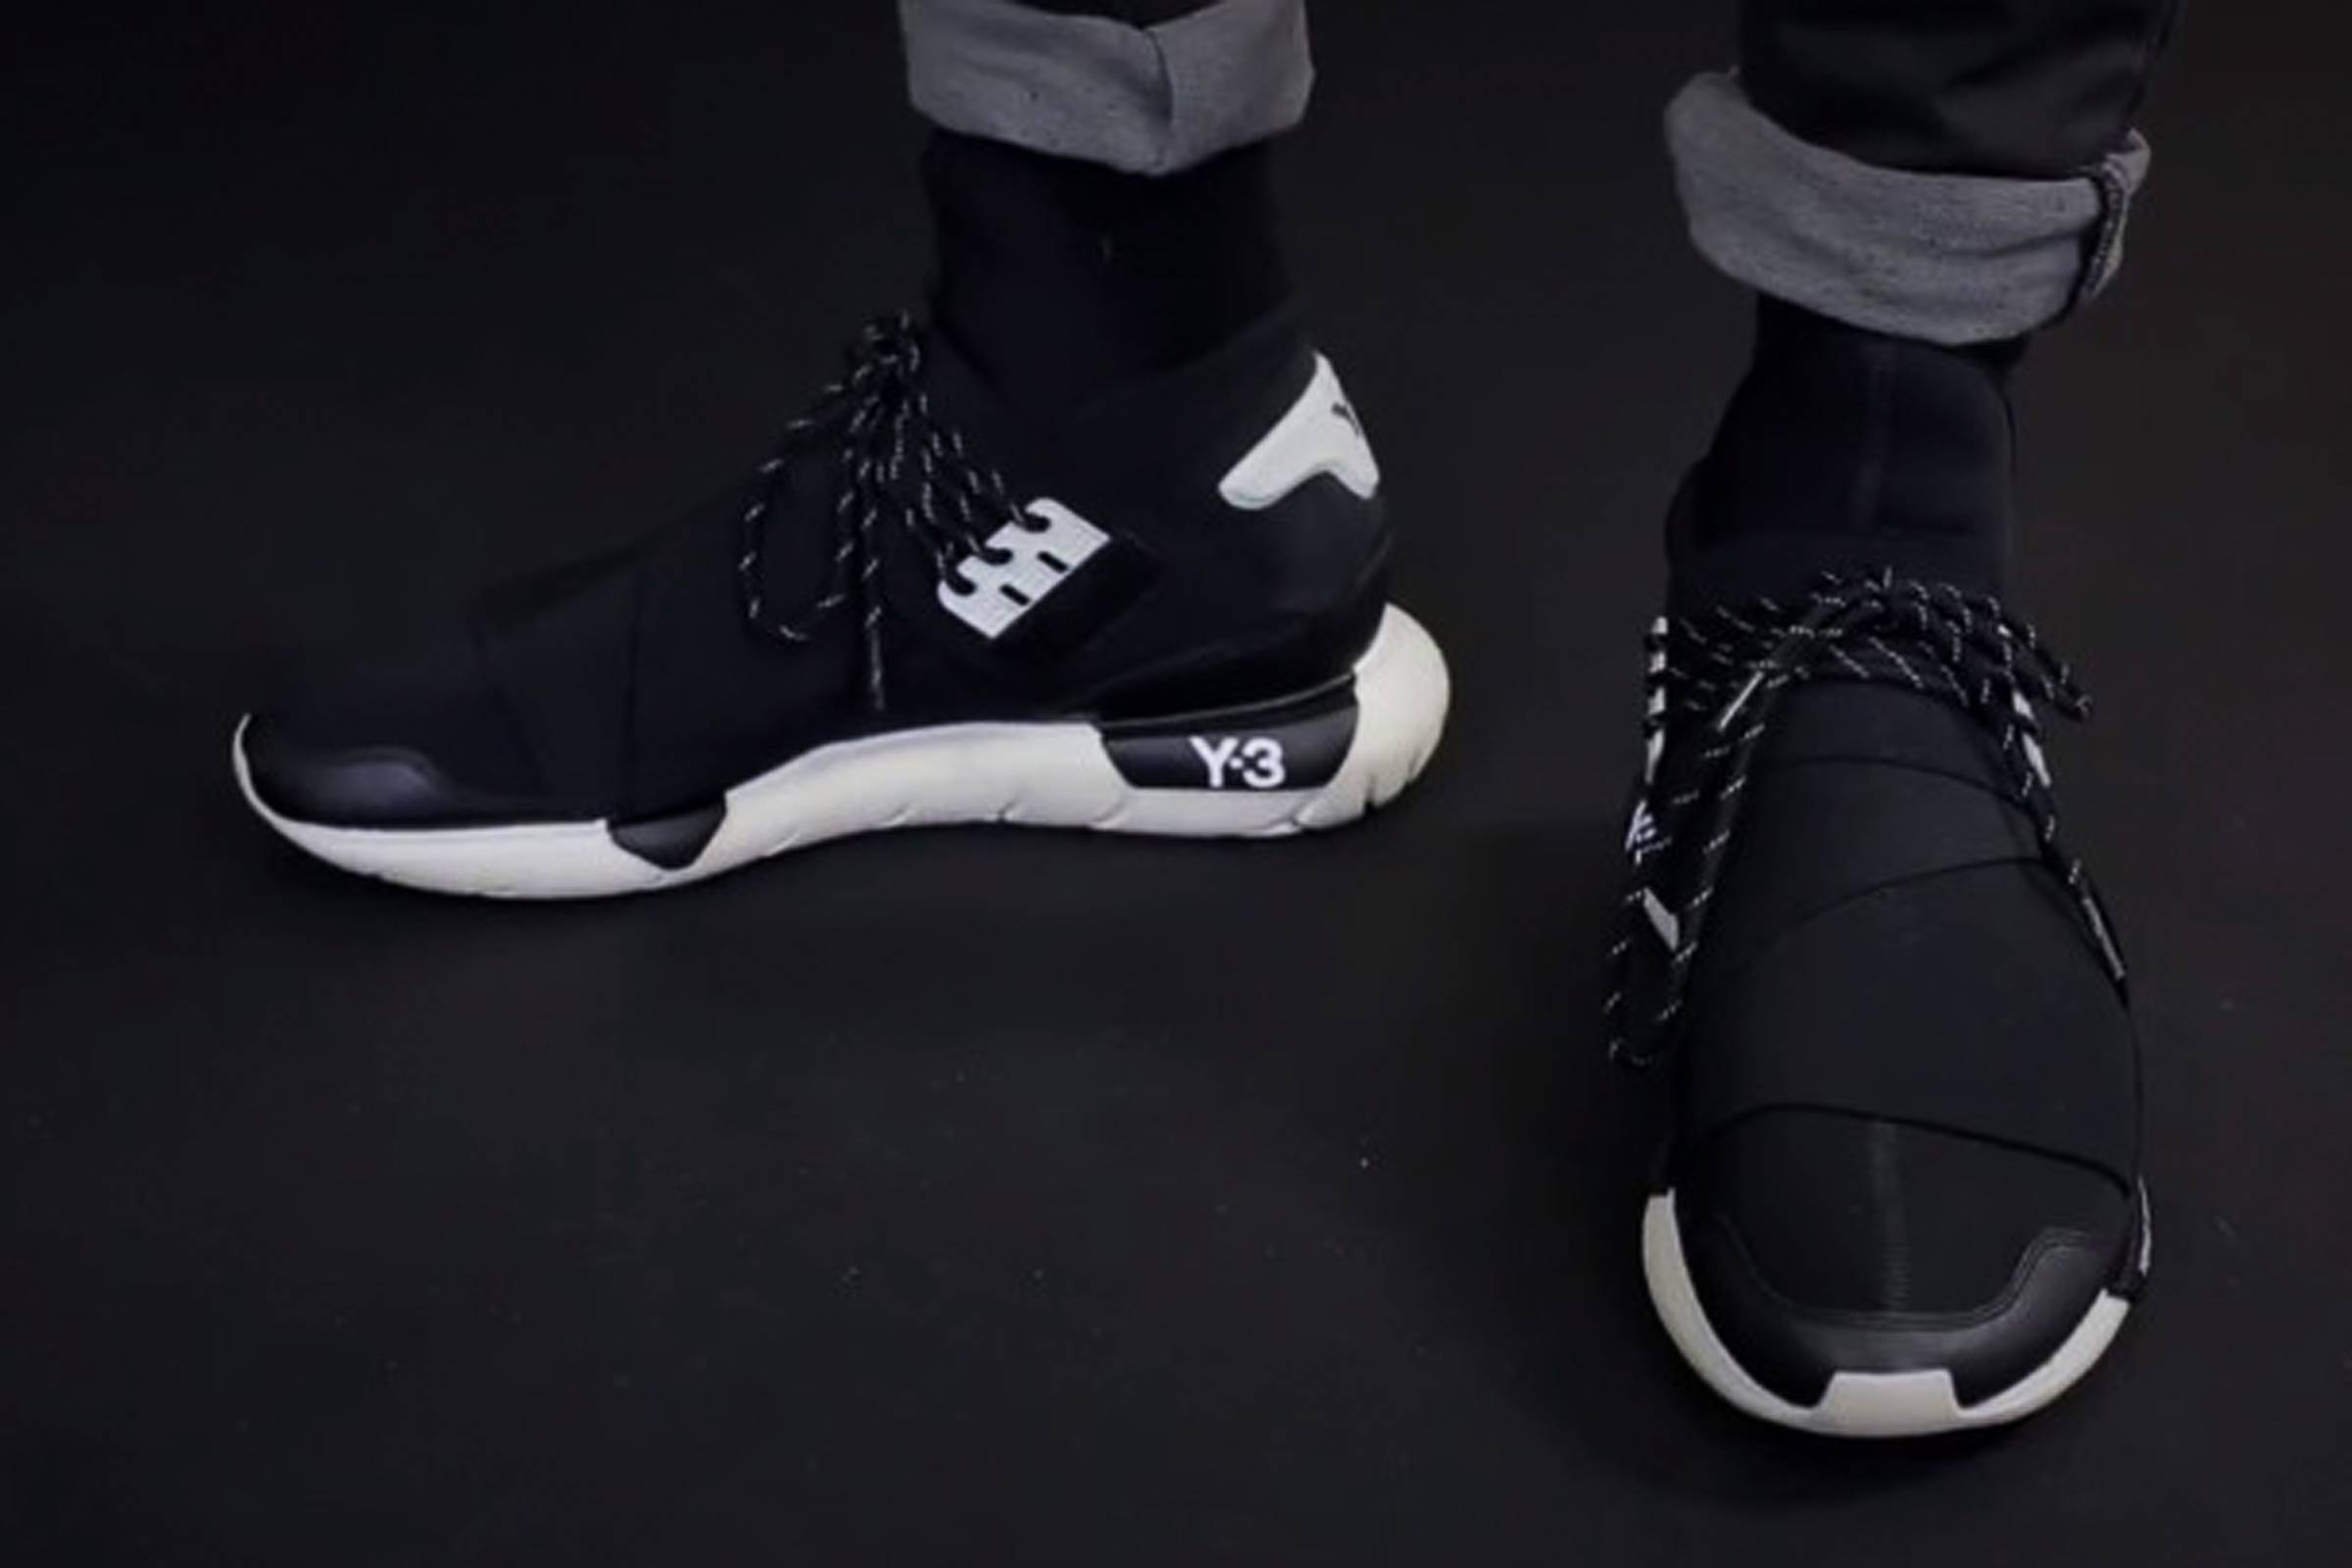 Walking Backwards Into the Future  Analyzing 15 Years of Y-3 ... 5a08267b5